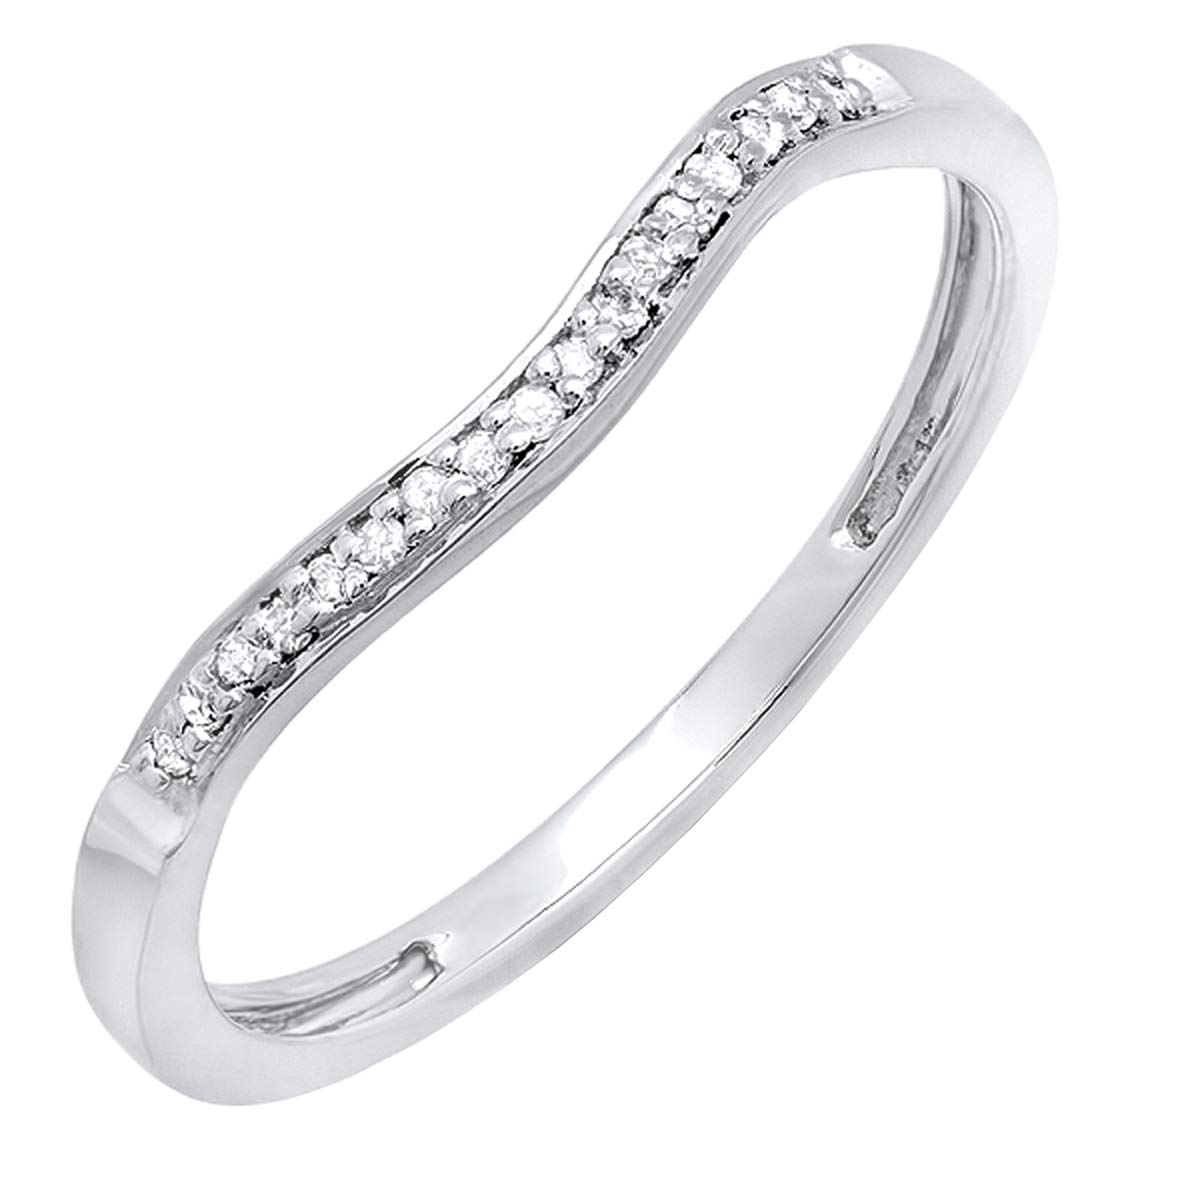 0.10 Carat (cttw) Round White Diamond Ladies Wedding Guard Band Ring 1/10 CT, 10K White Gold, Size 7 by Dazzlingrock Collection